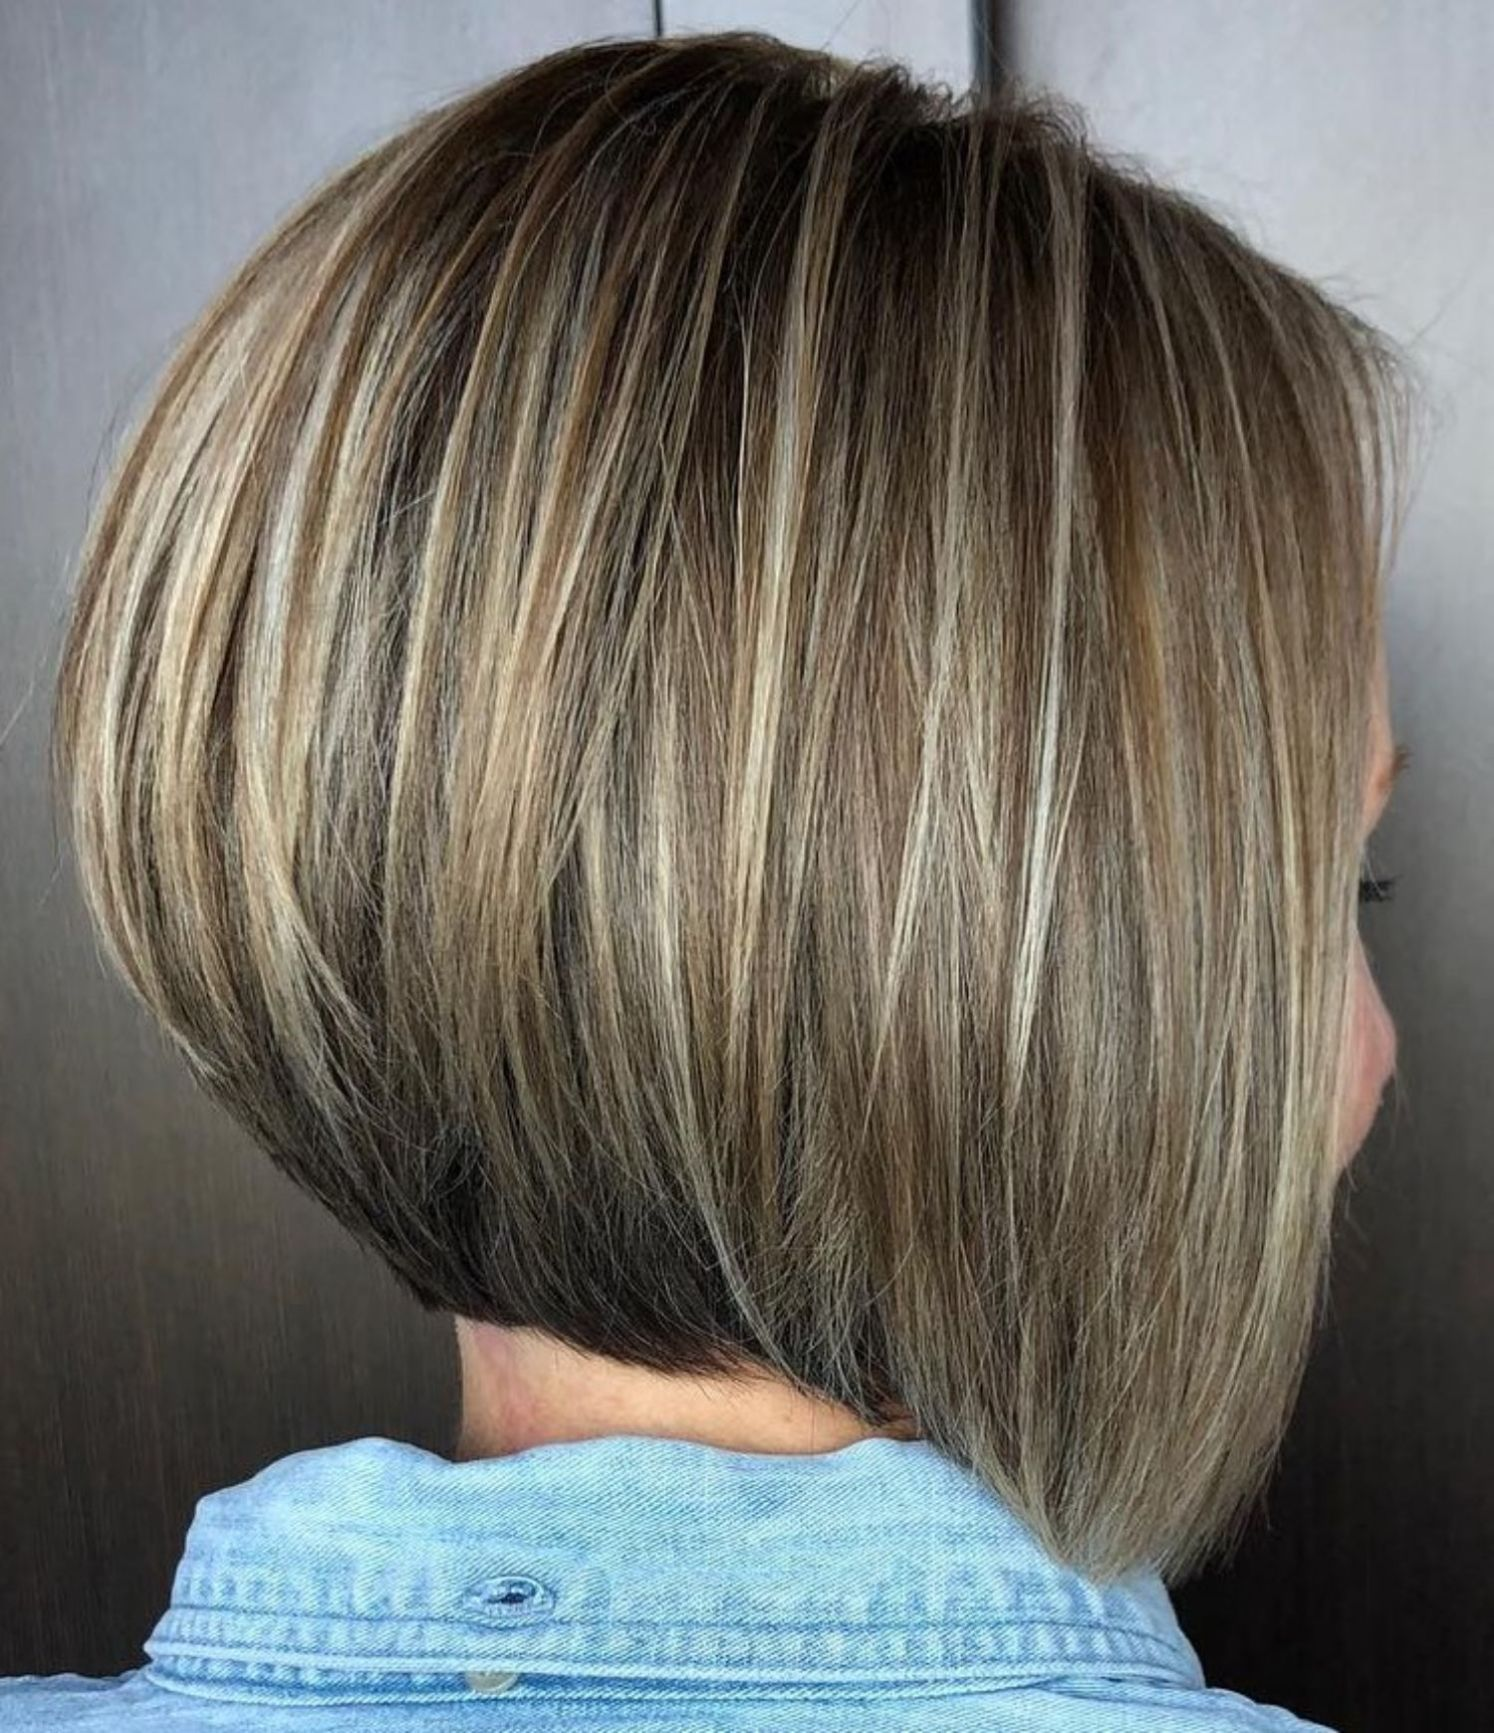 27+ Graduated bob hairstyles ideas in 2021